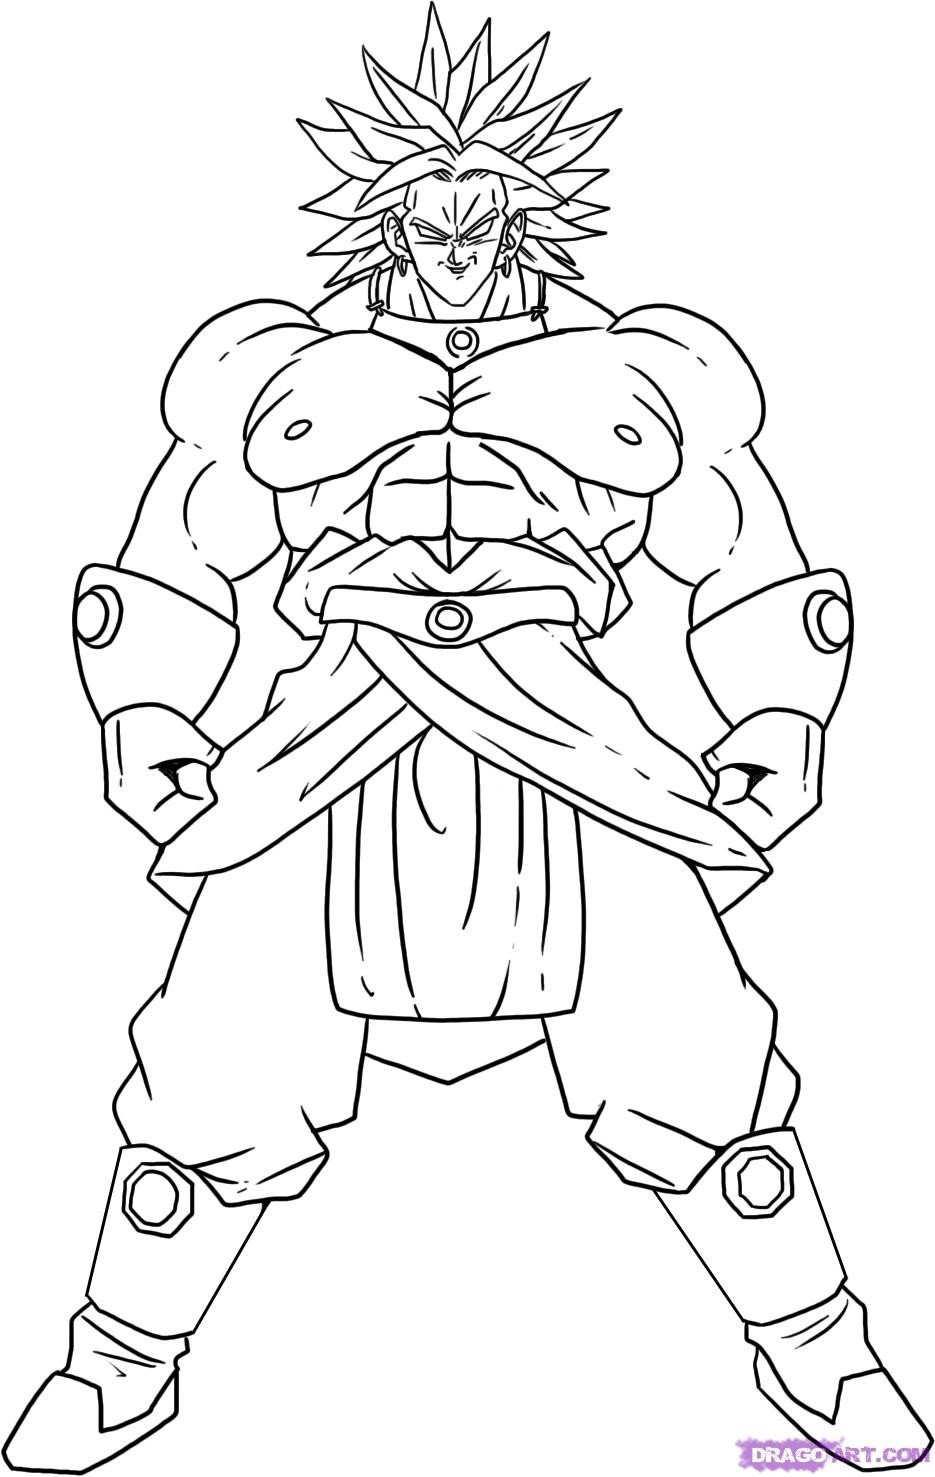 Free Printable Dragon Ball Z Coloring Pages For Kids